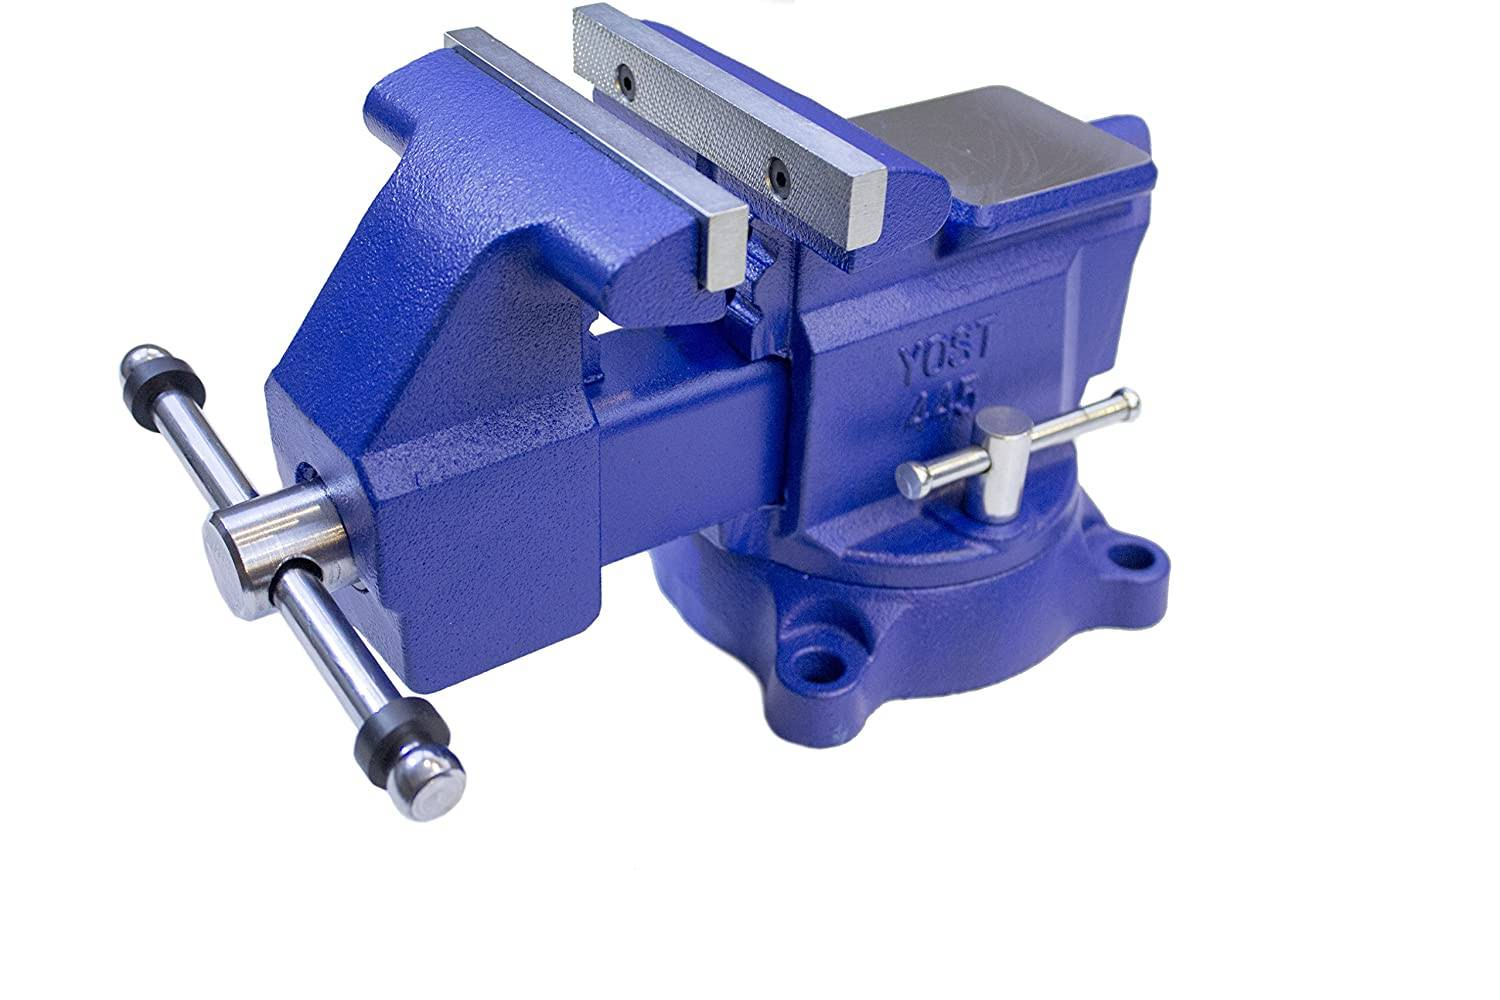 clamp on woodworking vise